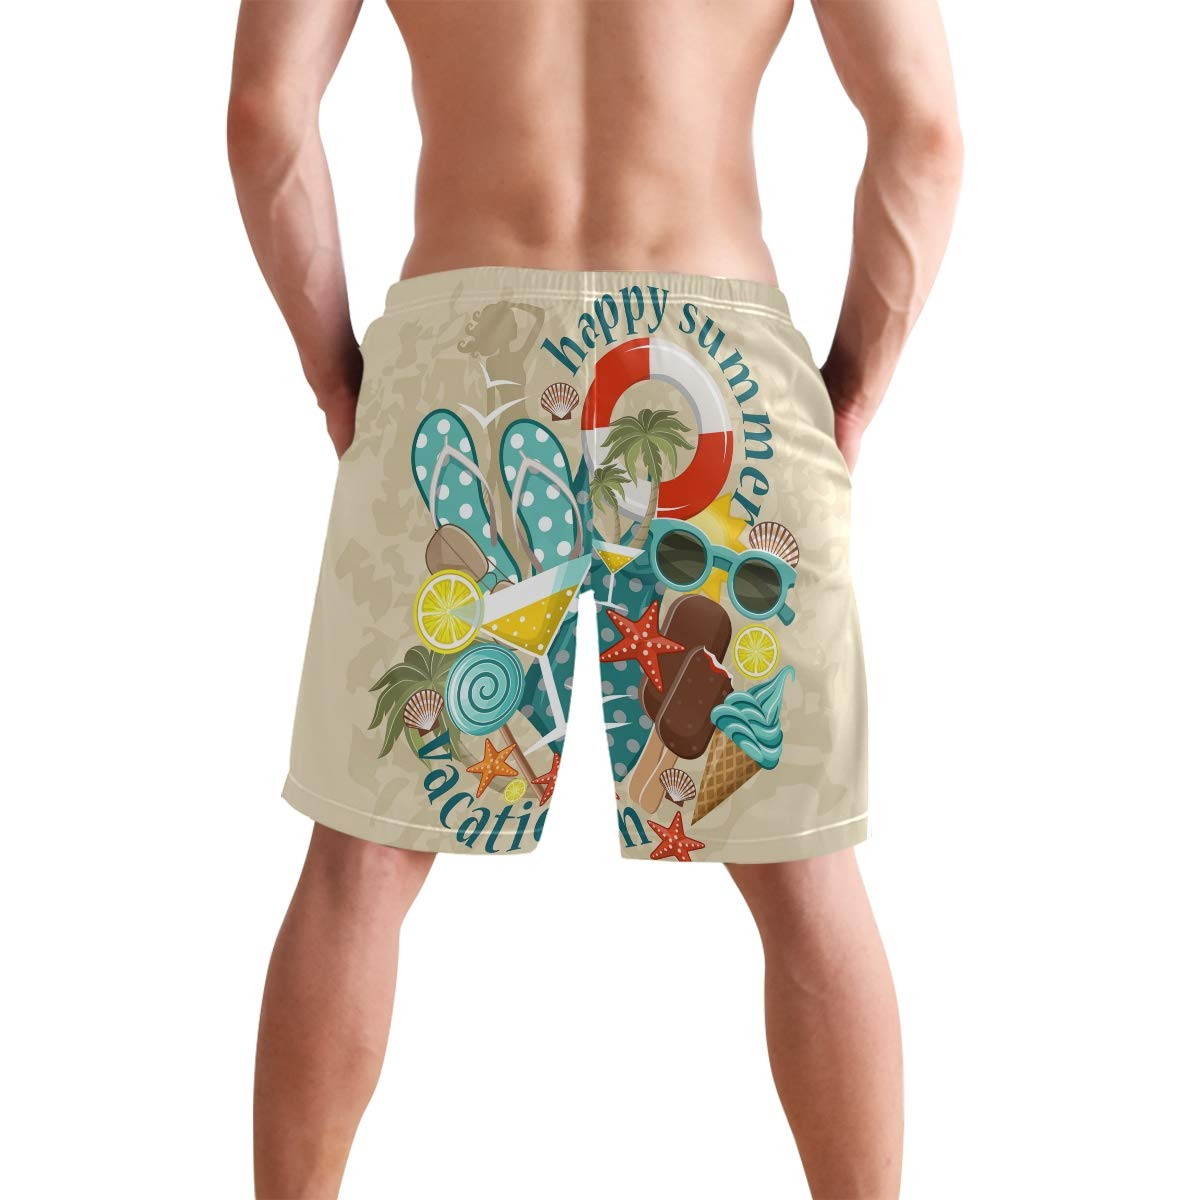 JERECY Mens Swim Trunks Happy Summer Holiday Beach Starfish Quick Dry Board Shorts with Drawstring and Pockets